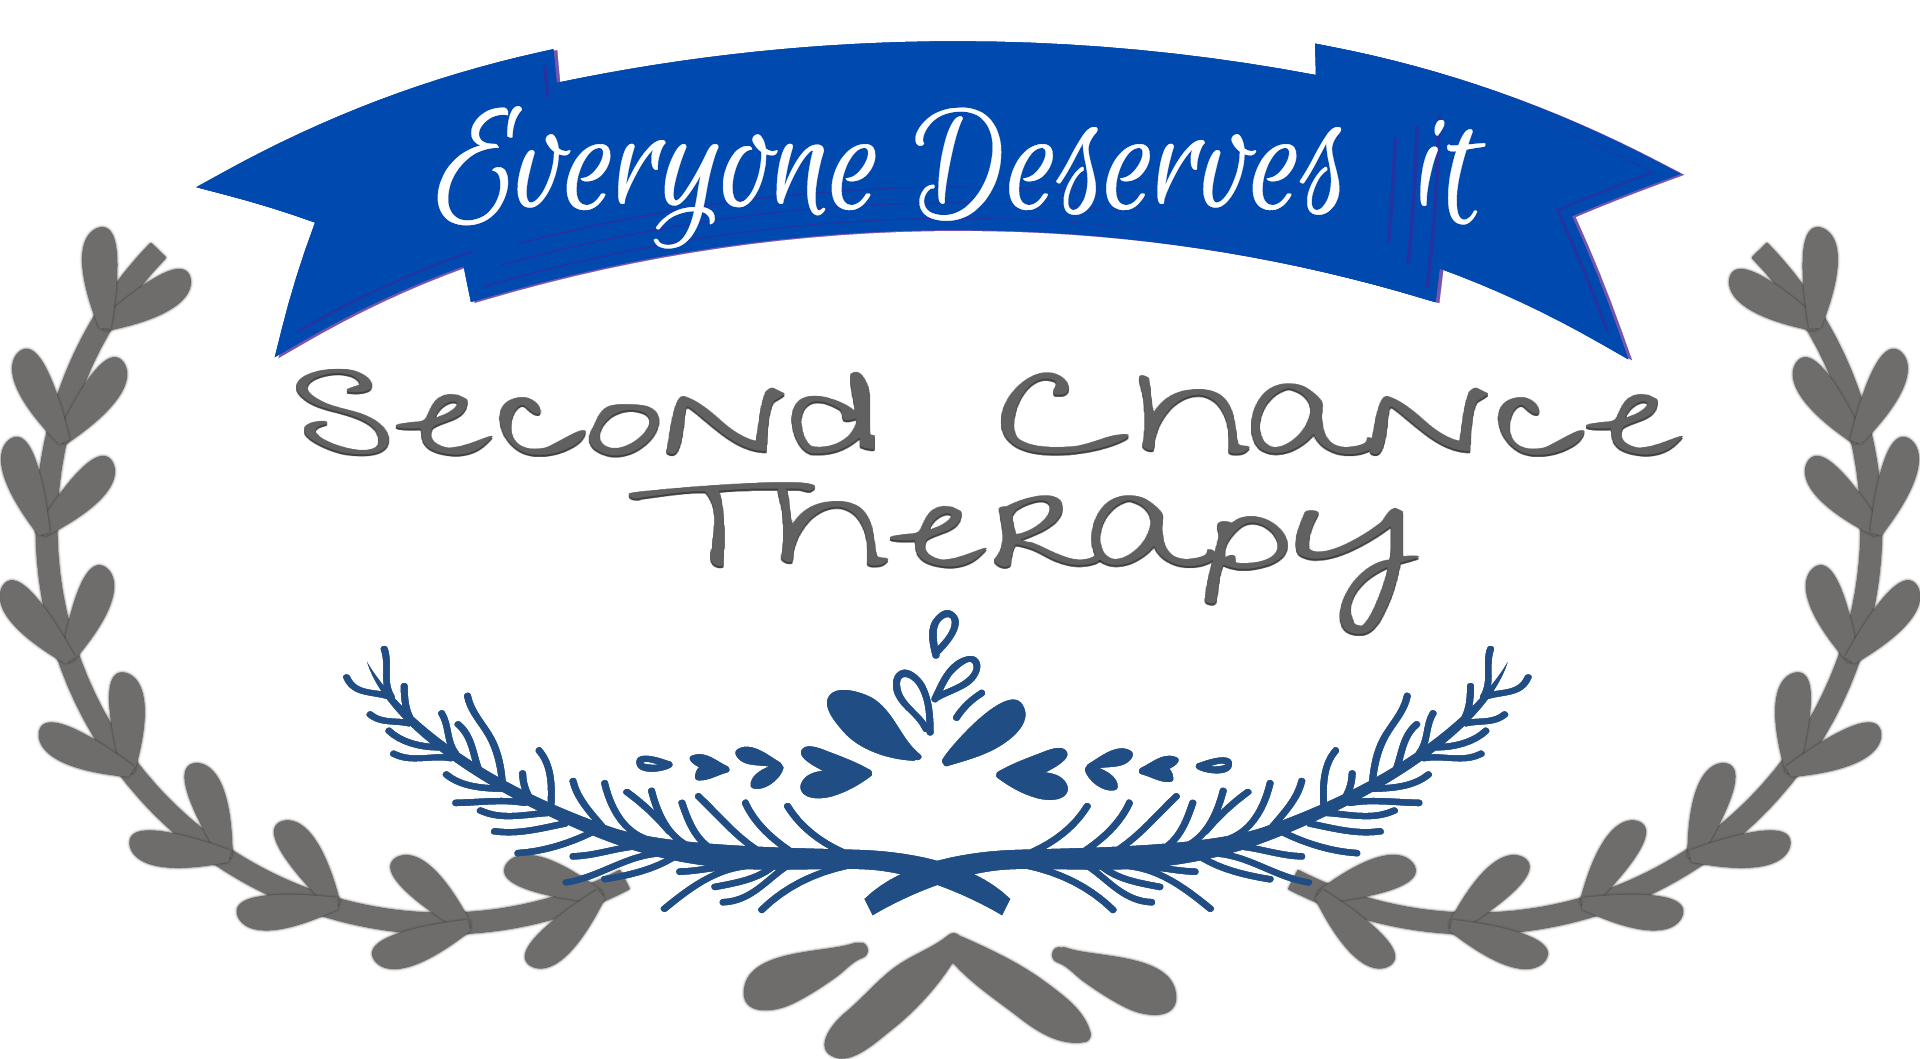 Second Chance Therapy